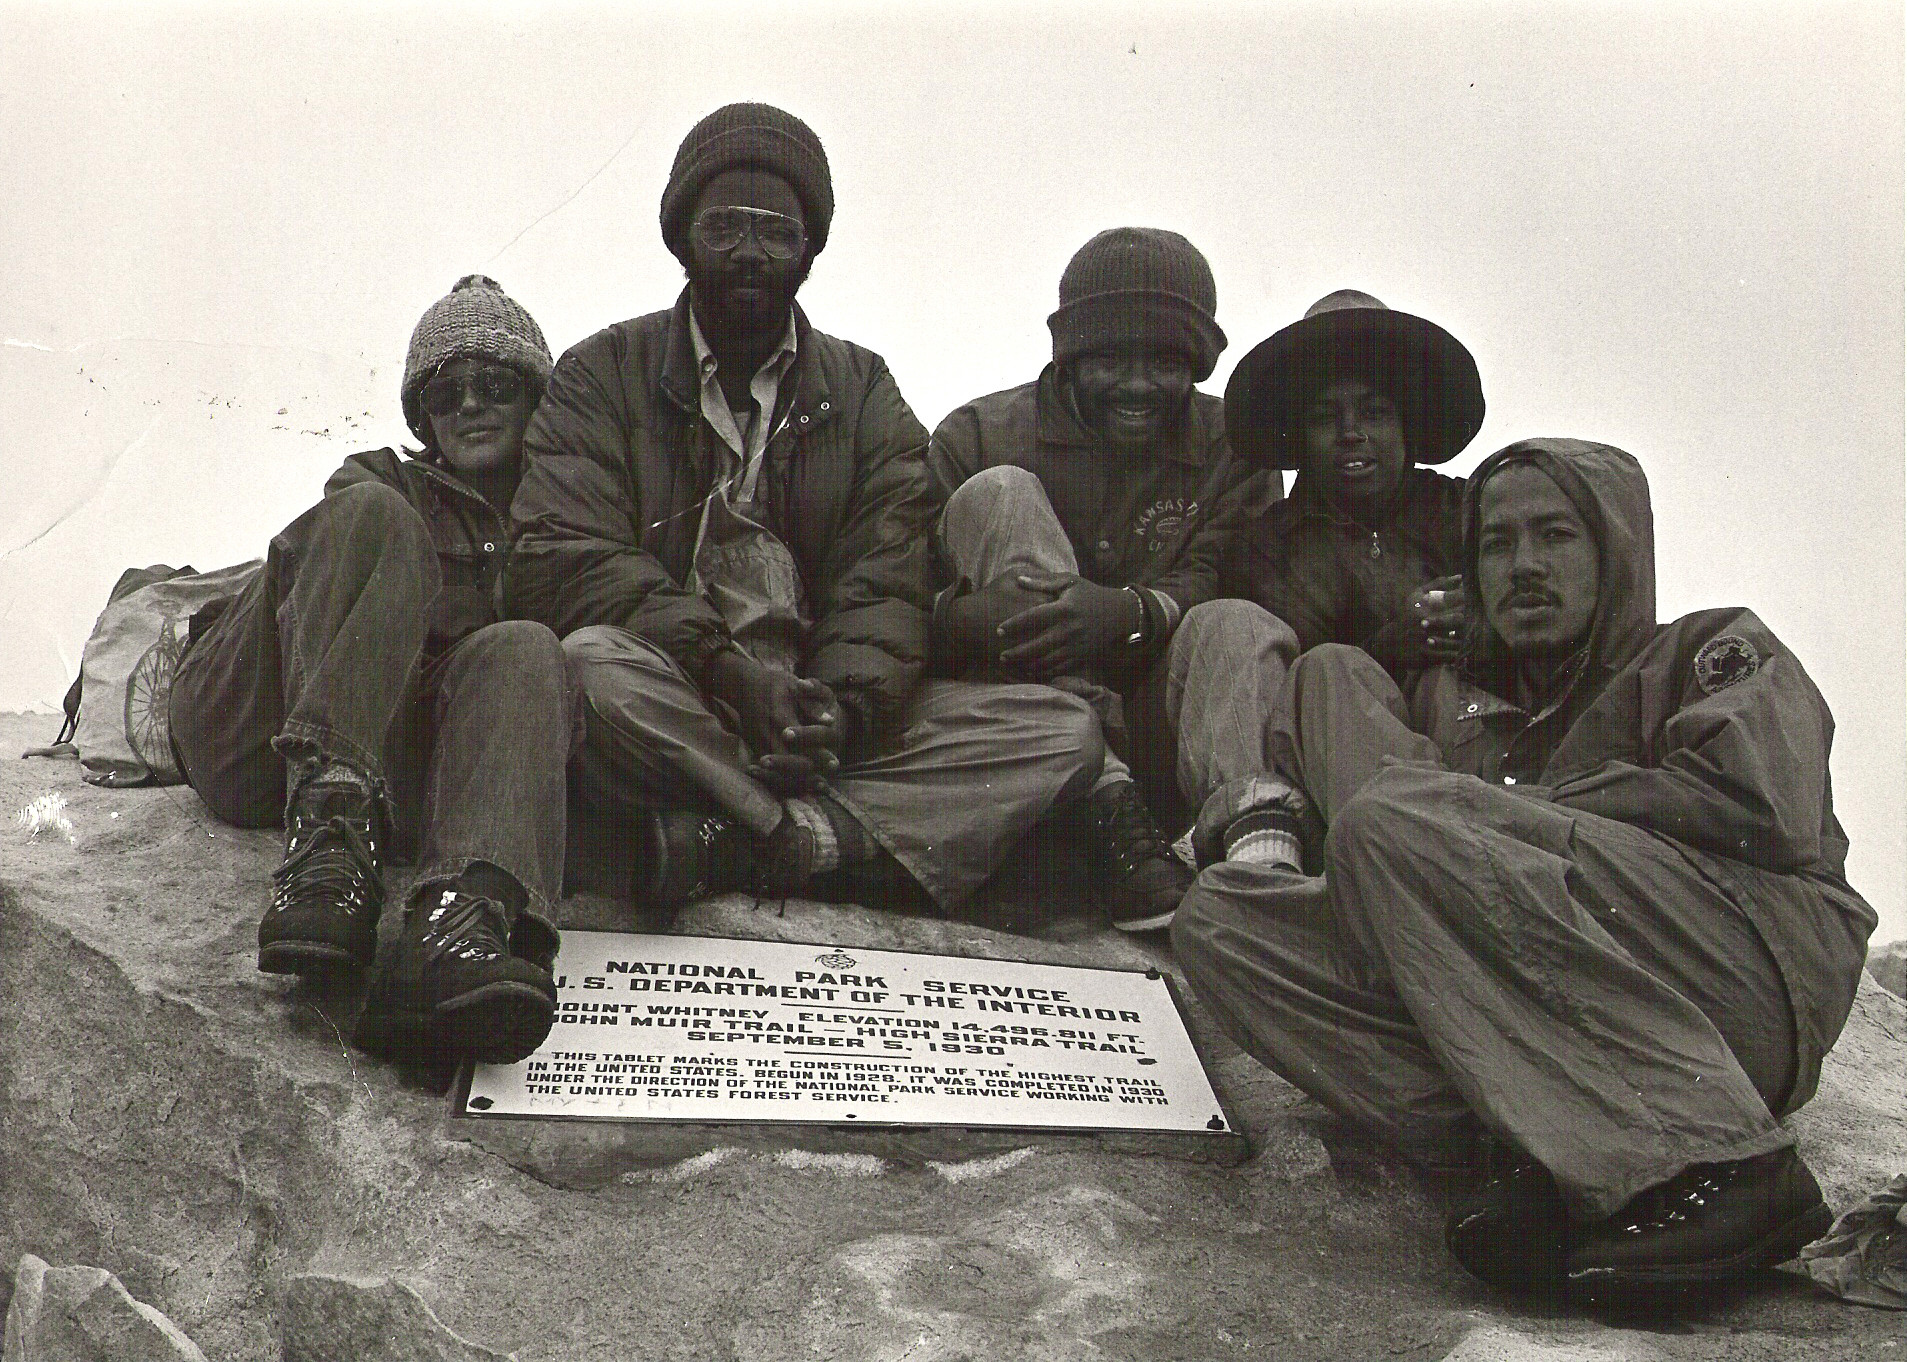 1972 - OBA Instructors scouting Mt. Whitney - Highest Peak in the continental United States